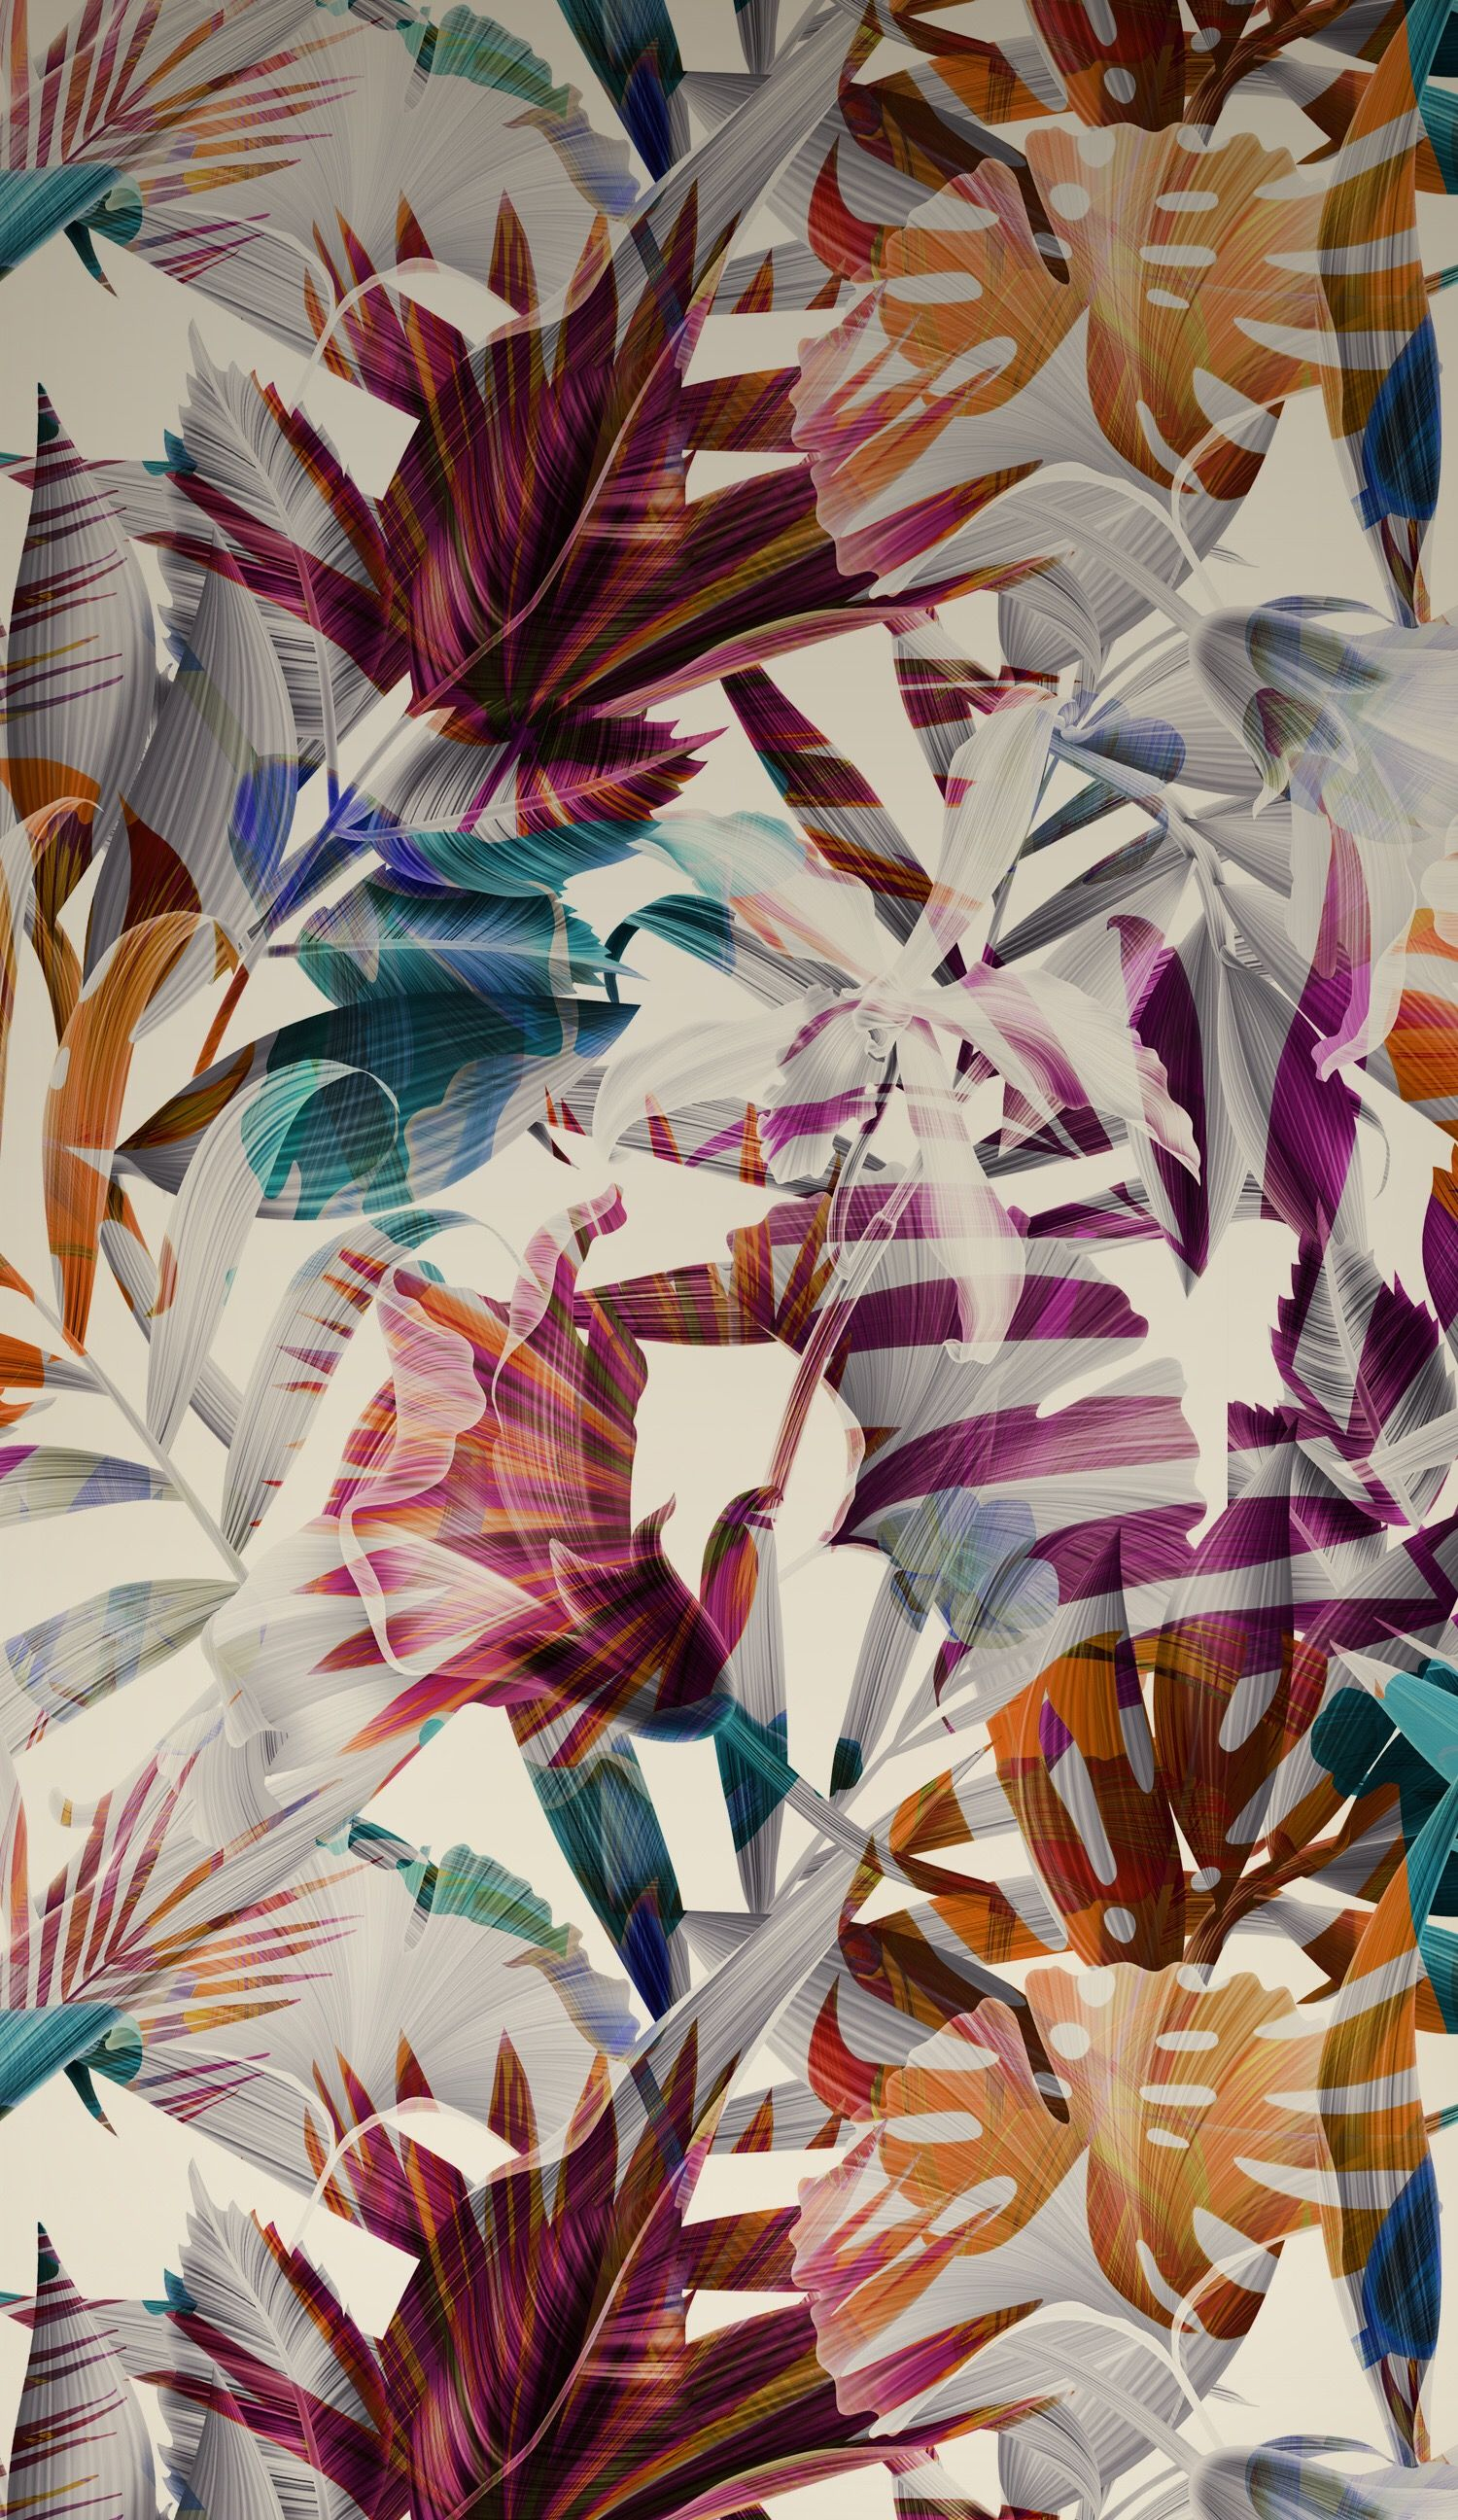 Pin by ยิปซี on Texture Iphone wallpaper tropical